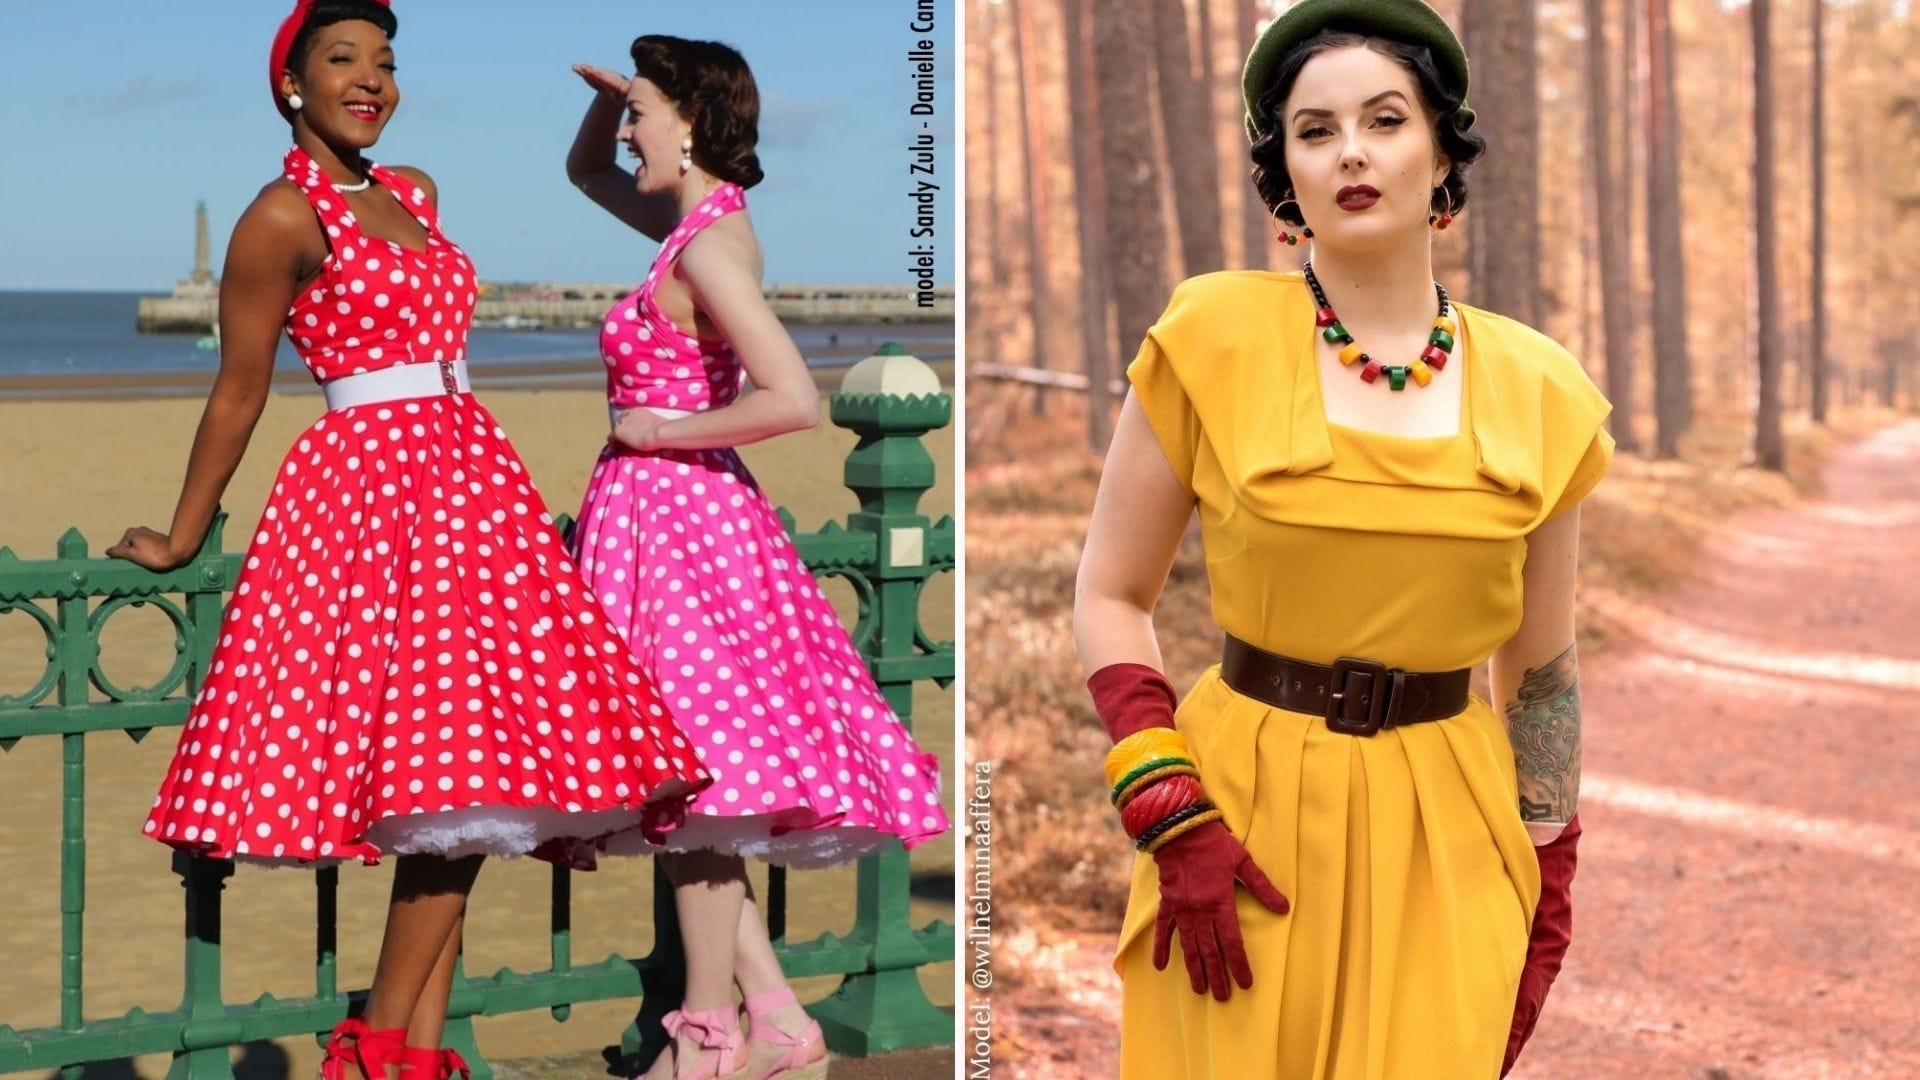 Two women in colorful polka dot halter dresses; a woman in a yellow dress and red gloves